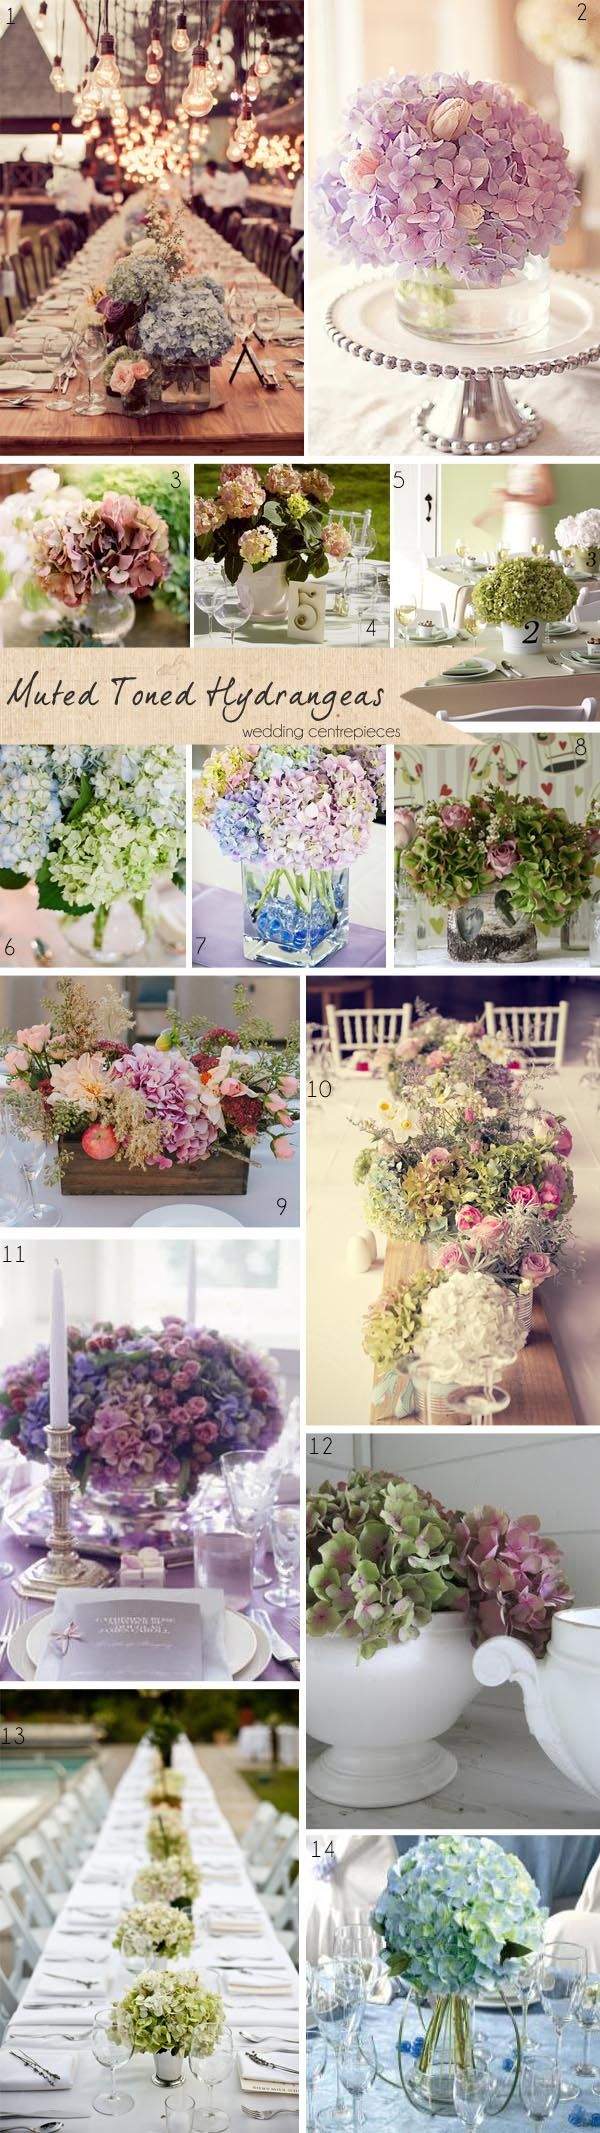 Muted Toned Hydrangeas ~ Get To Know Your Wedding Flowers